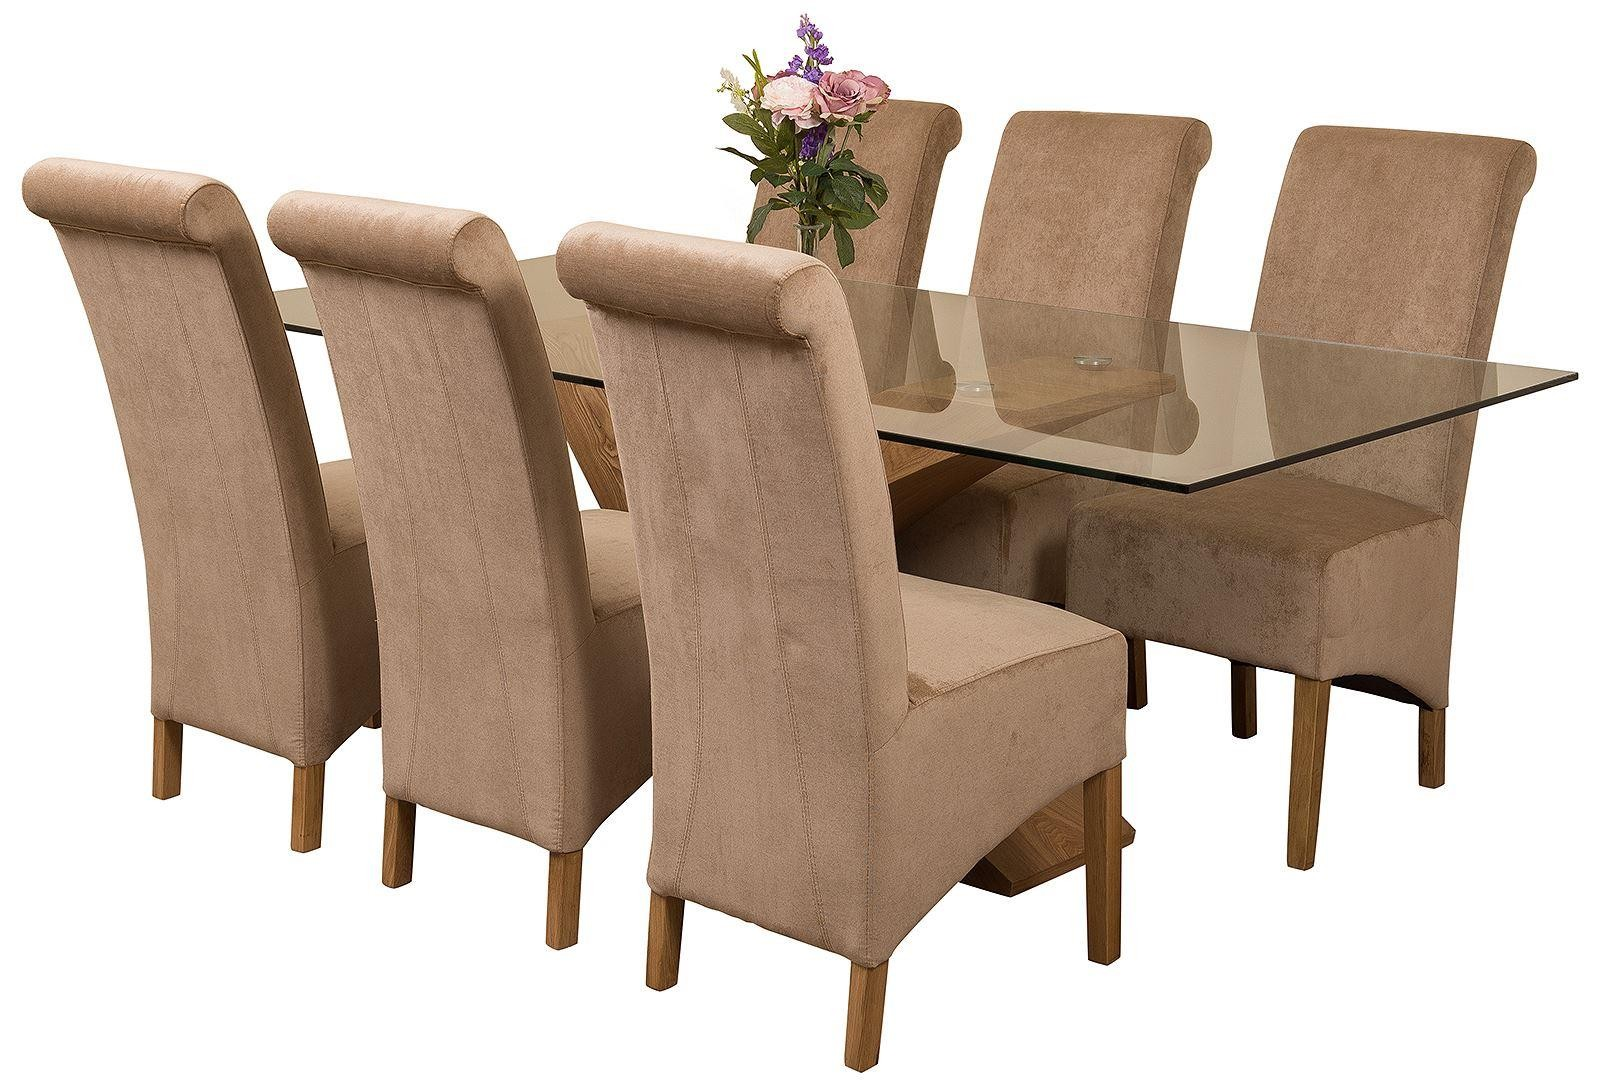 Valencia Oak 200cm Wood and Glass Dining Table with 6 Montana Dining Chairs [Beige Fabric]